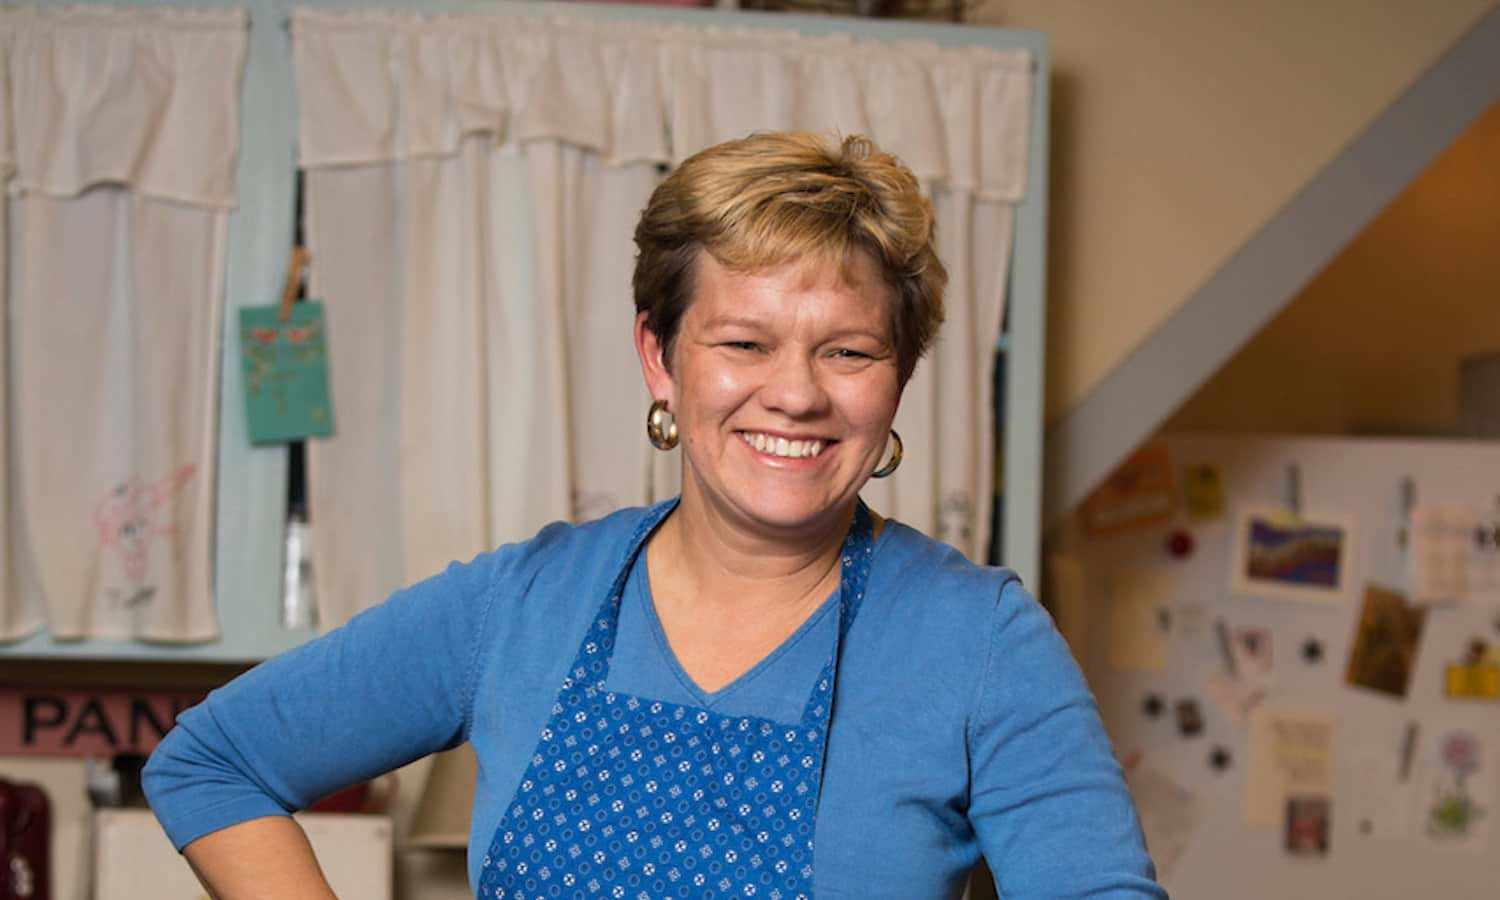 On Food Talk, Lisa Kivirist talks about her projects and programs that empower women and round up resources and tools for their sustainable farms.